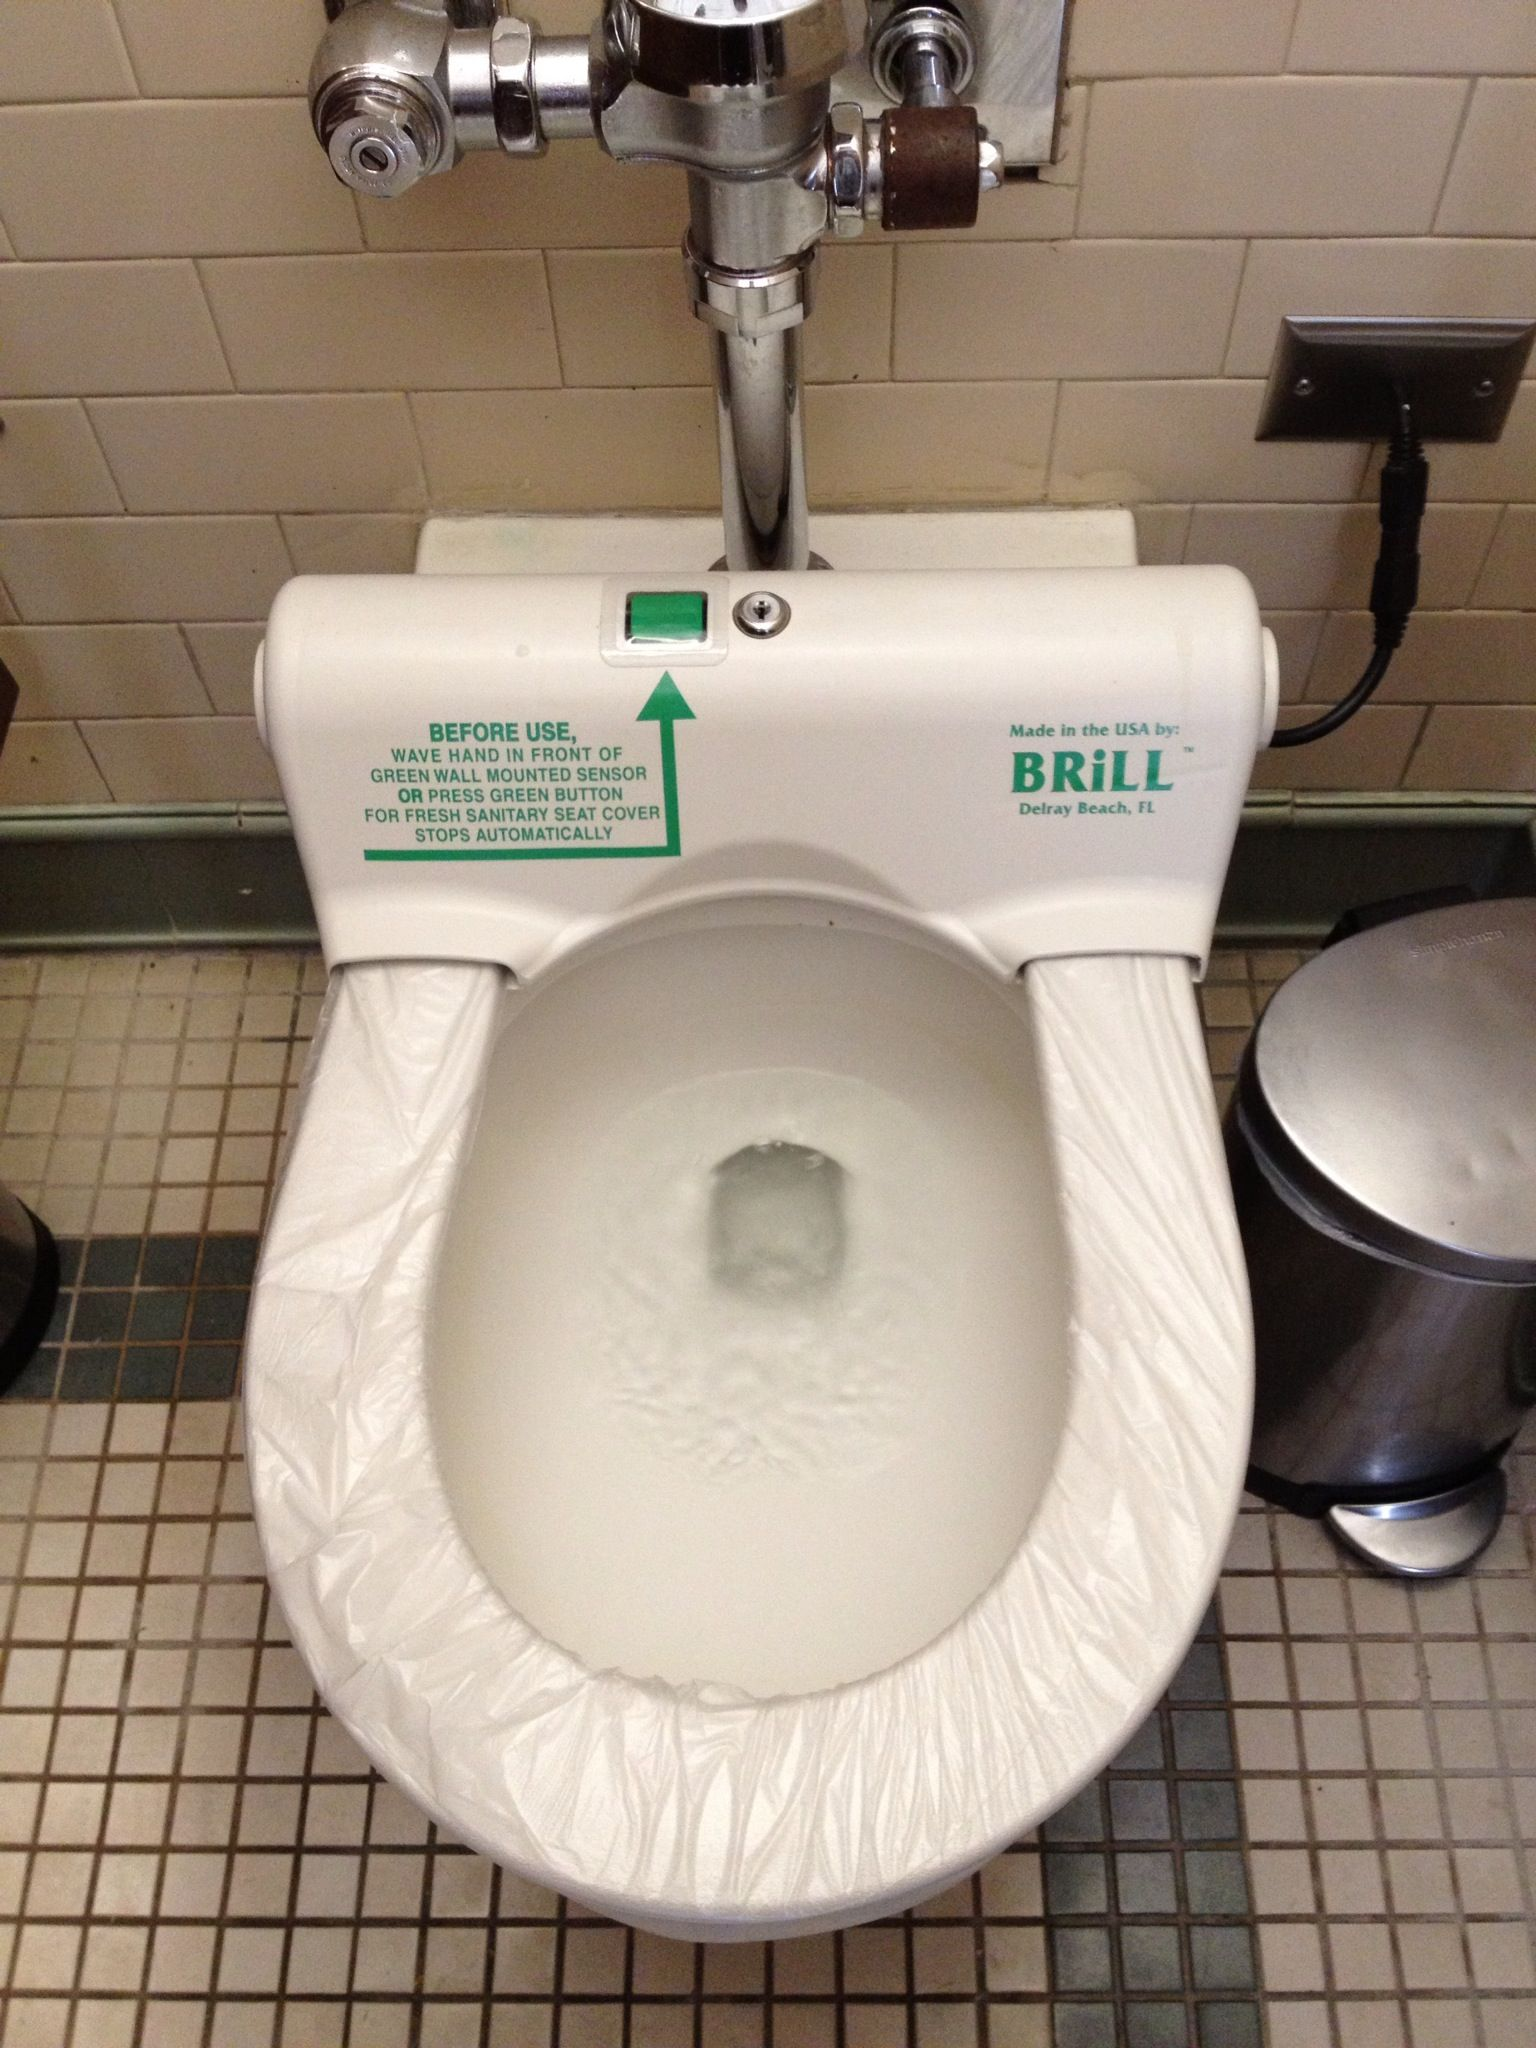 Plastic Toilet Seat Cover That Automatically Changes After Each